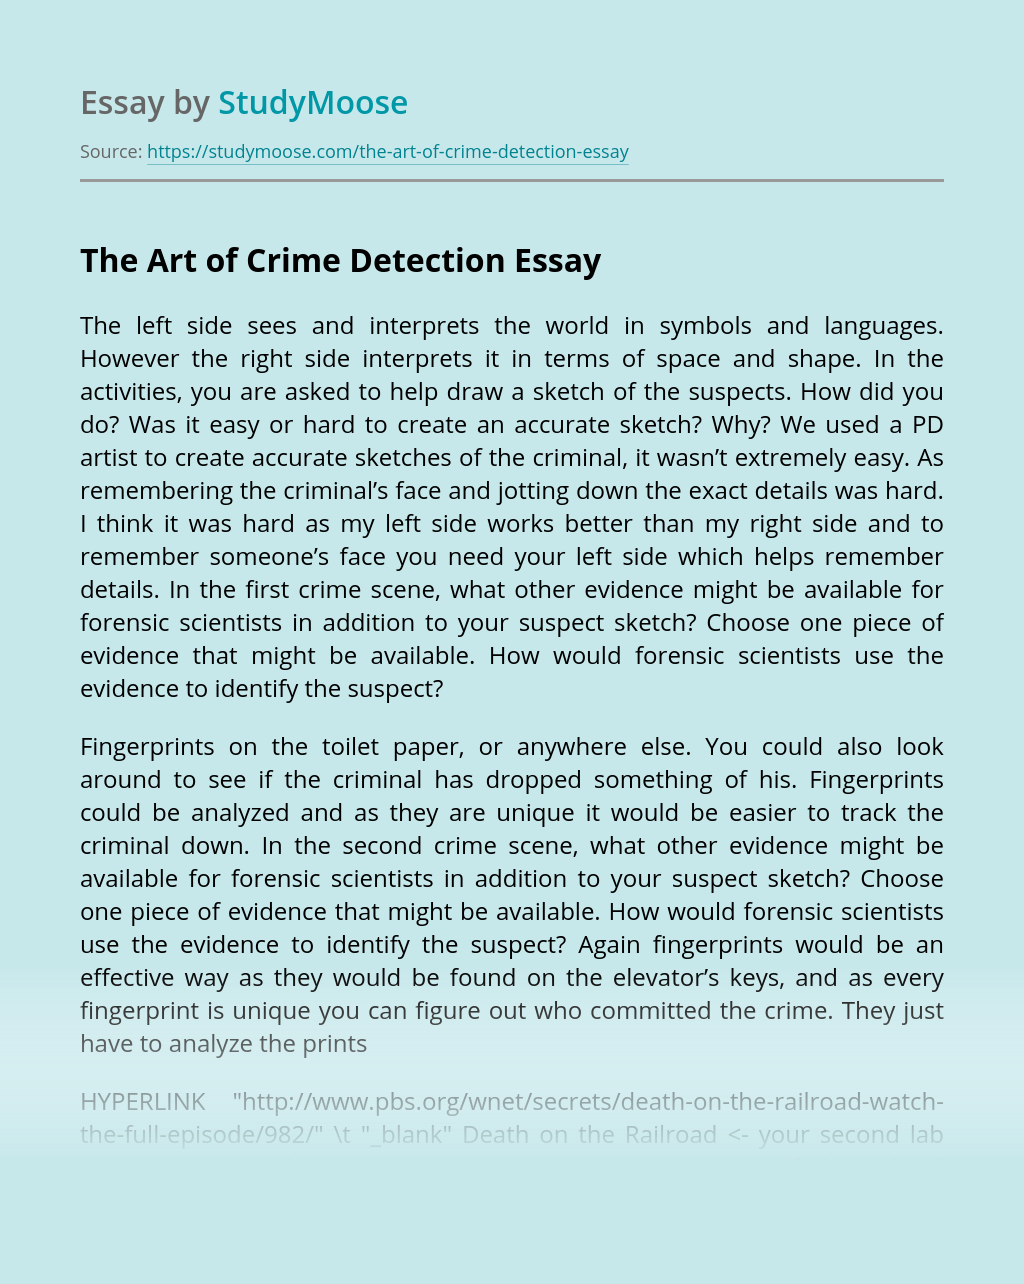 The Art of Crime Detection